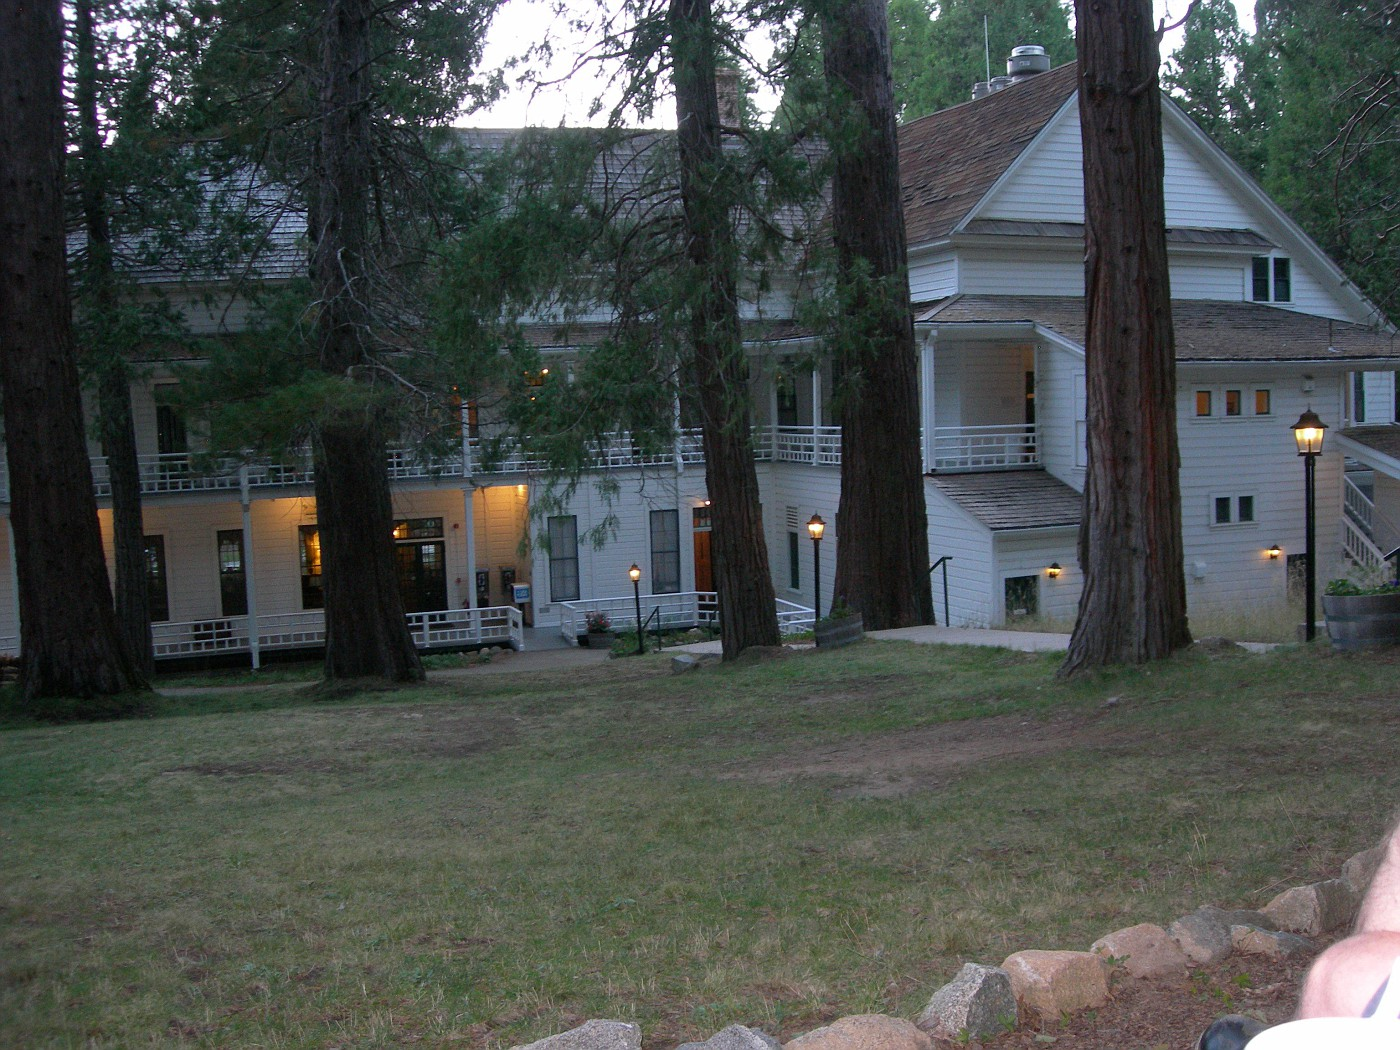 Wawona Hotel - main buildng back